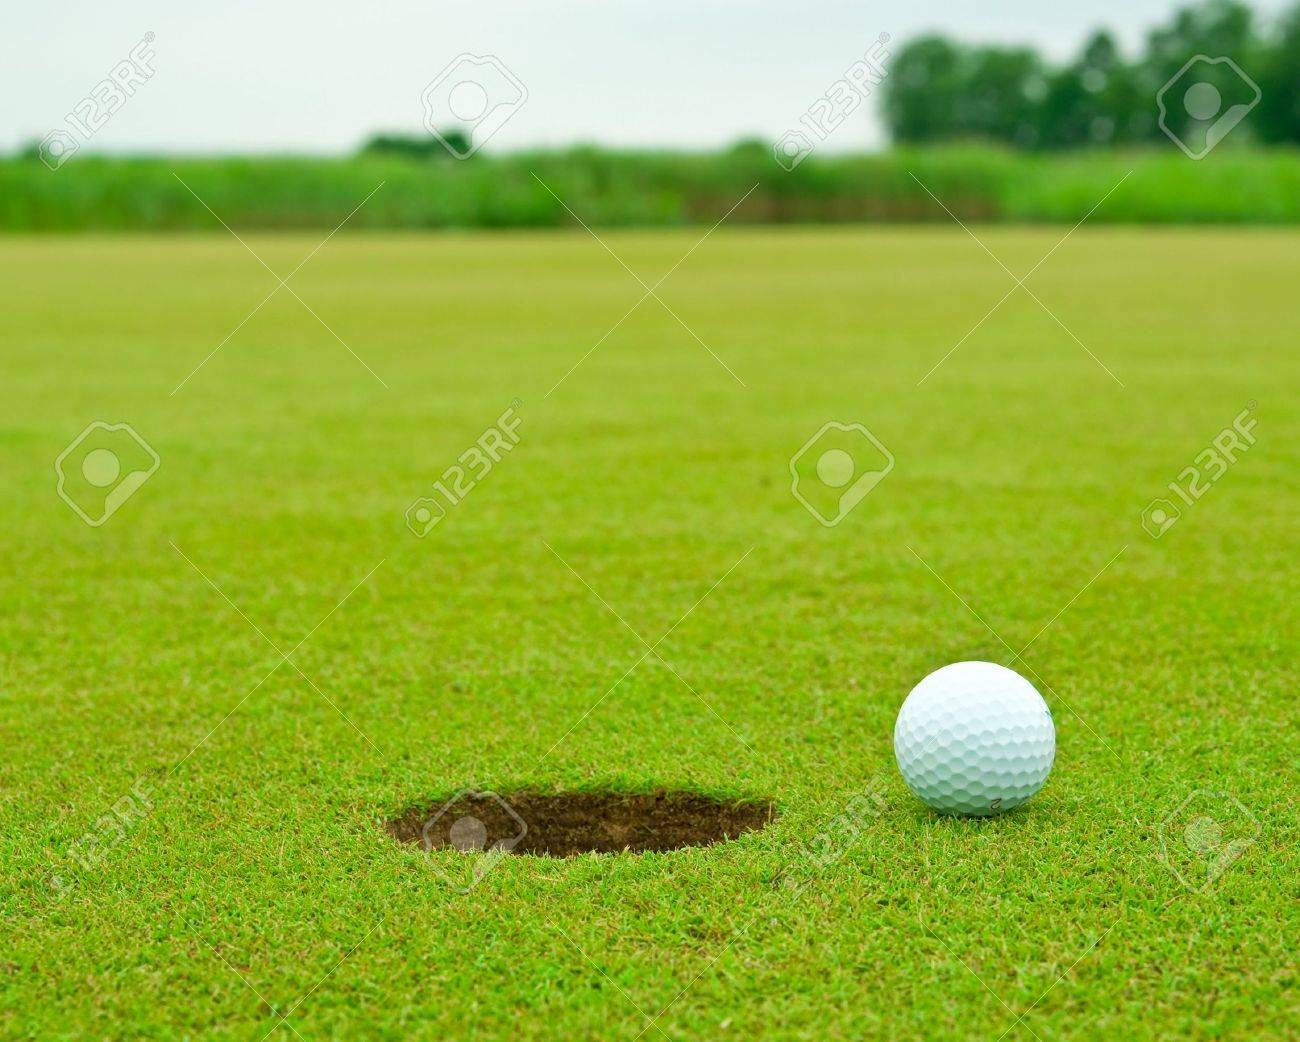 Golf ball very close to the hole Stock Photo - 7292705